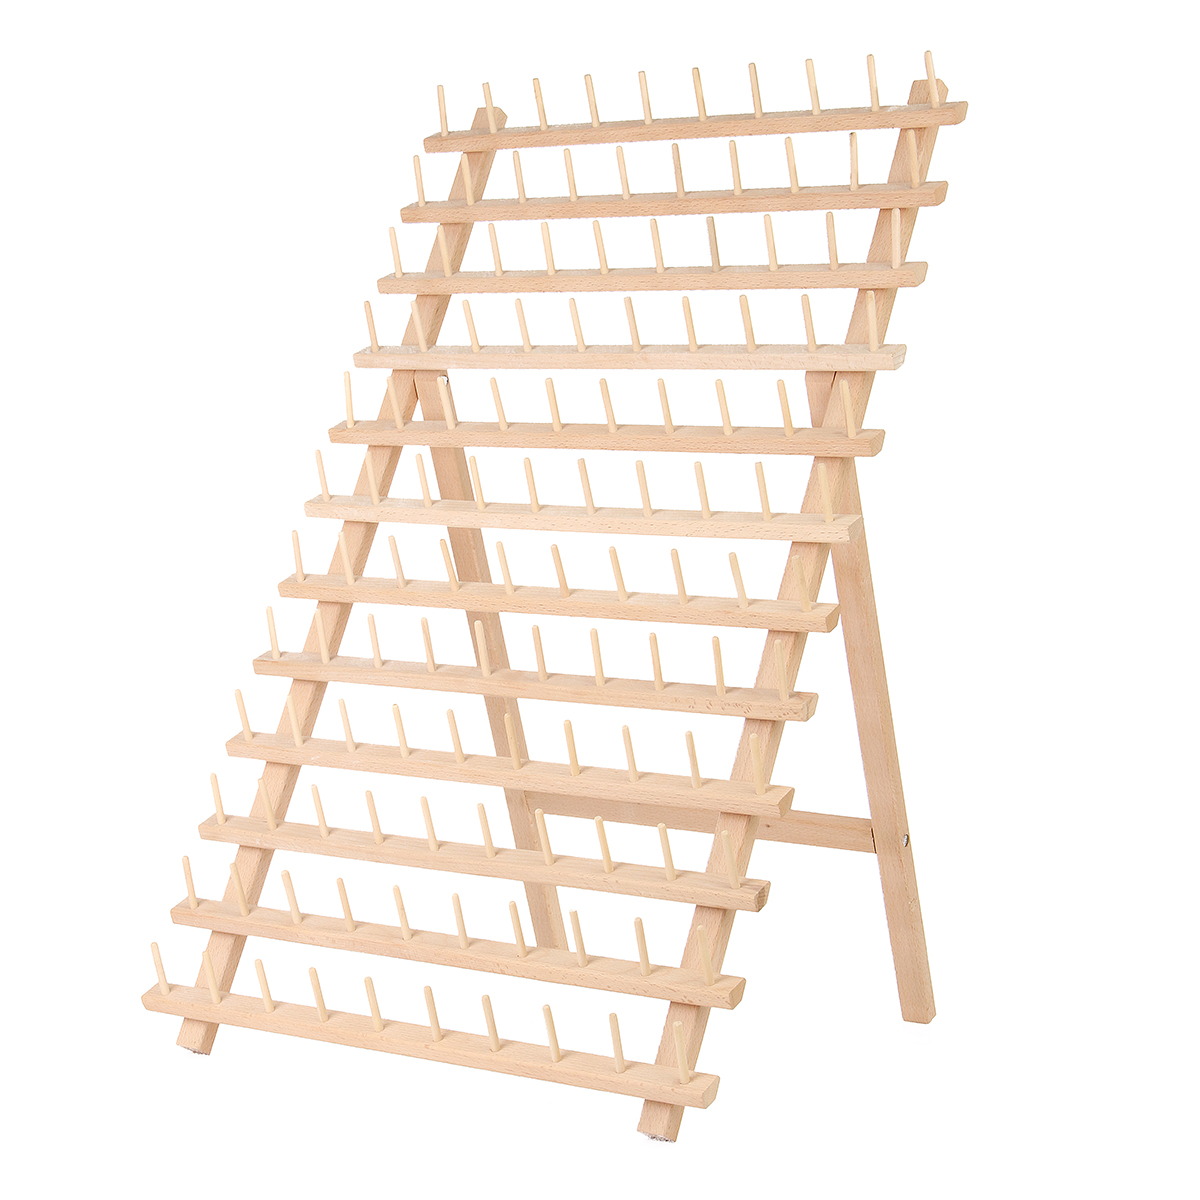 120 spool thread rack wooden thread holder sewing organizer for sewing quilting embroidery hair braiding